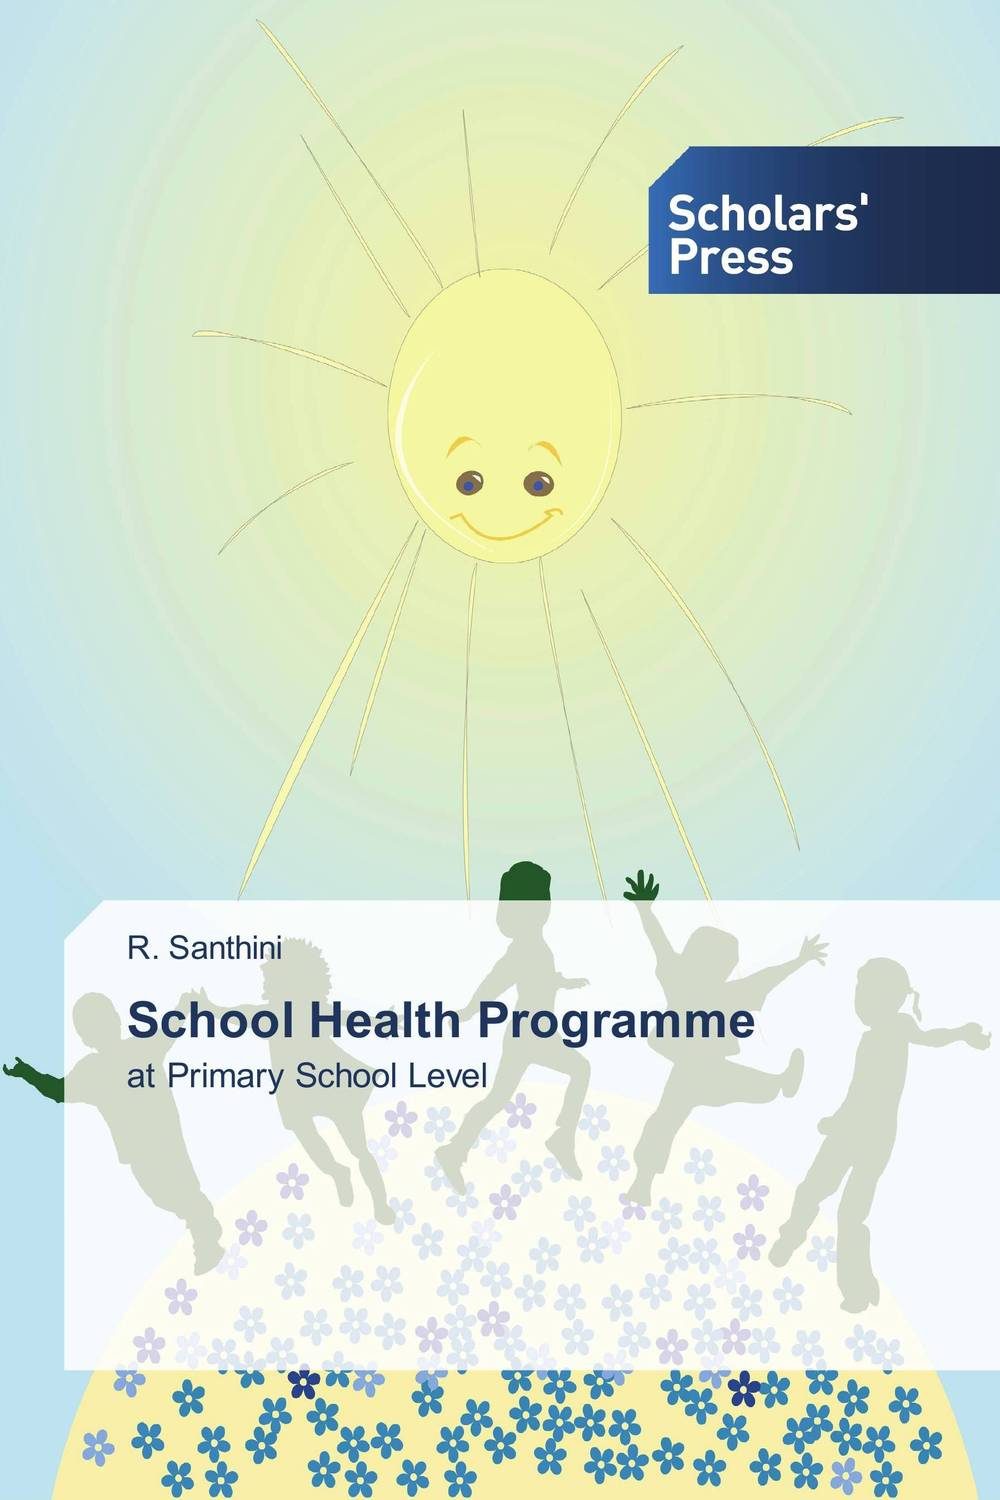 School Health Programme achieving the goals of art learning through sandwich nce programme